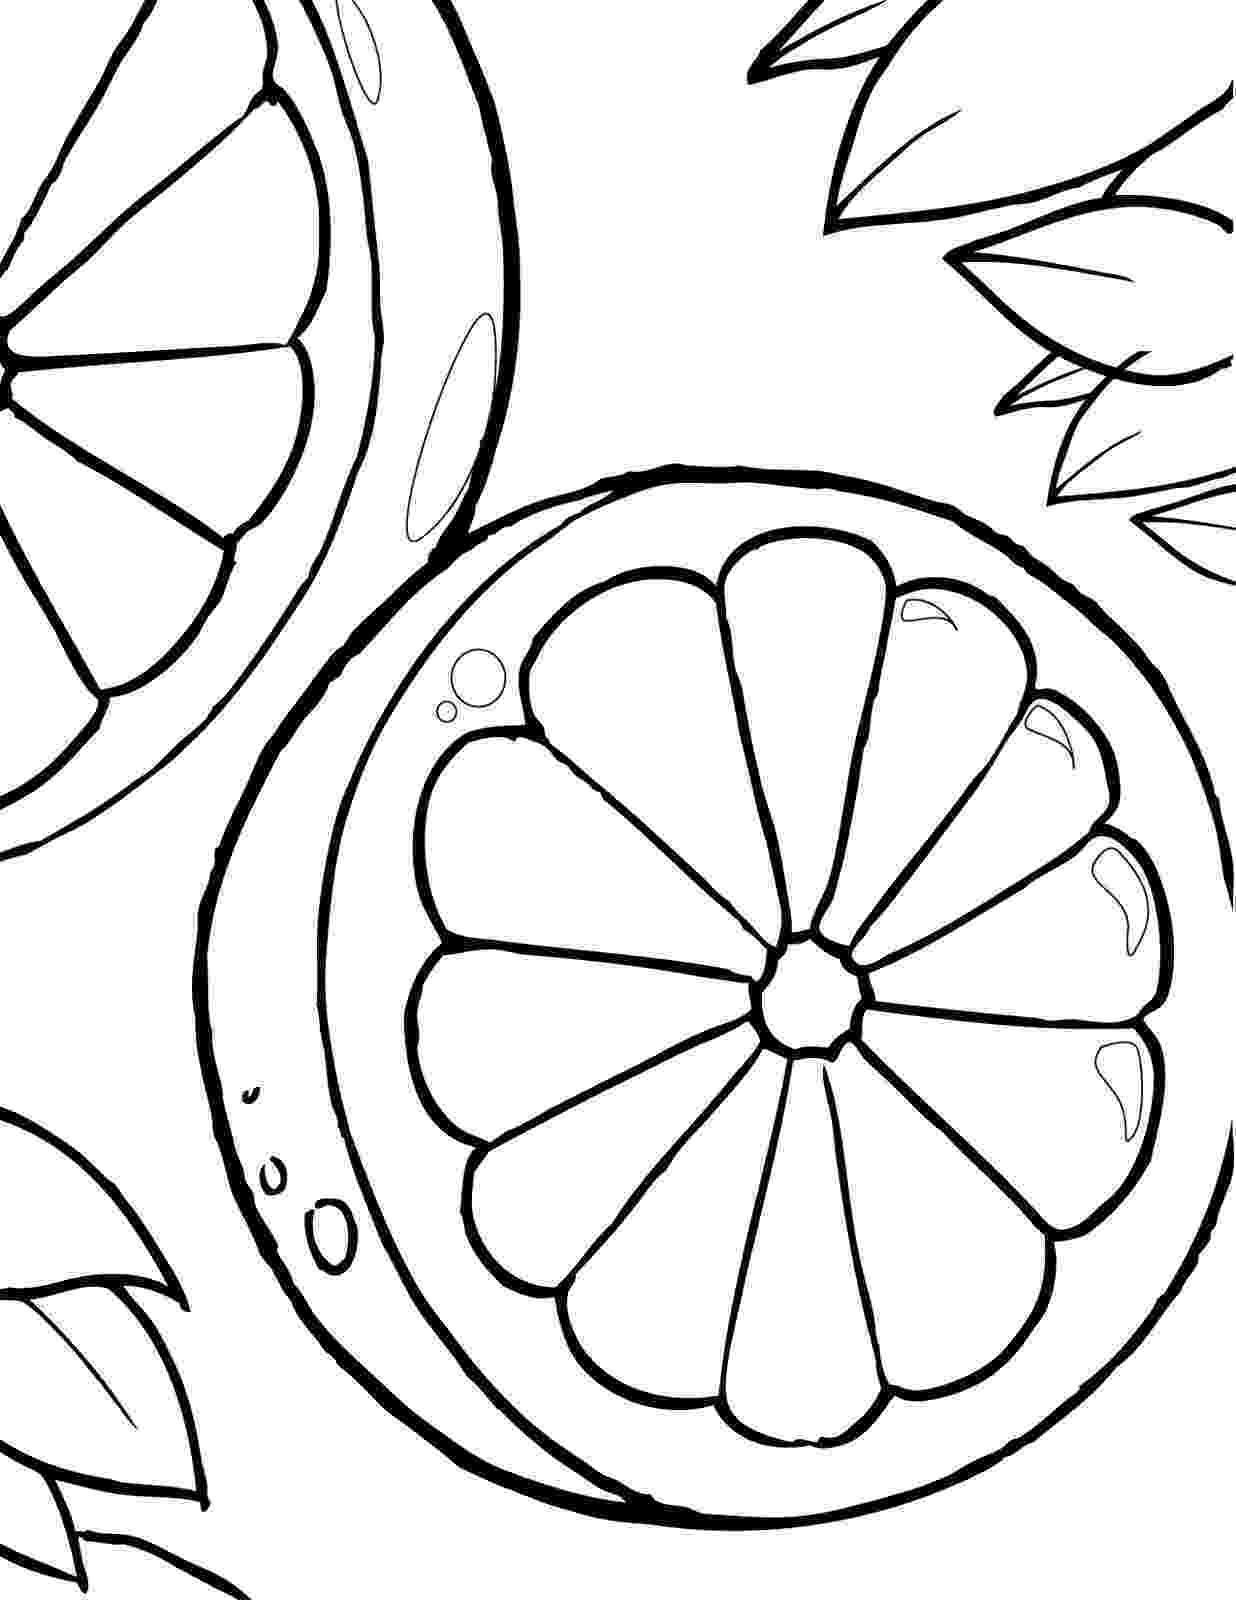 coloring pages printable printable dinosaur coloring pages for kids cool2bkids printable coloring pages